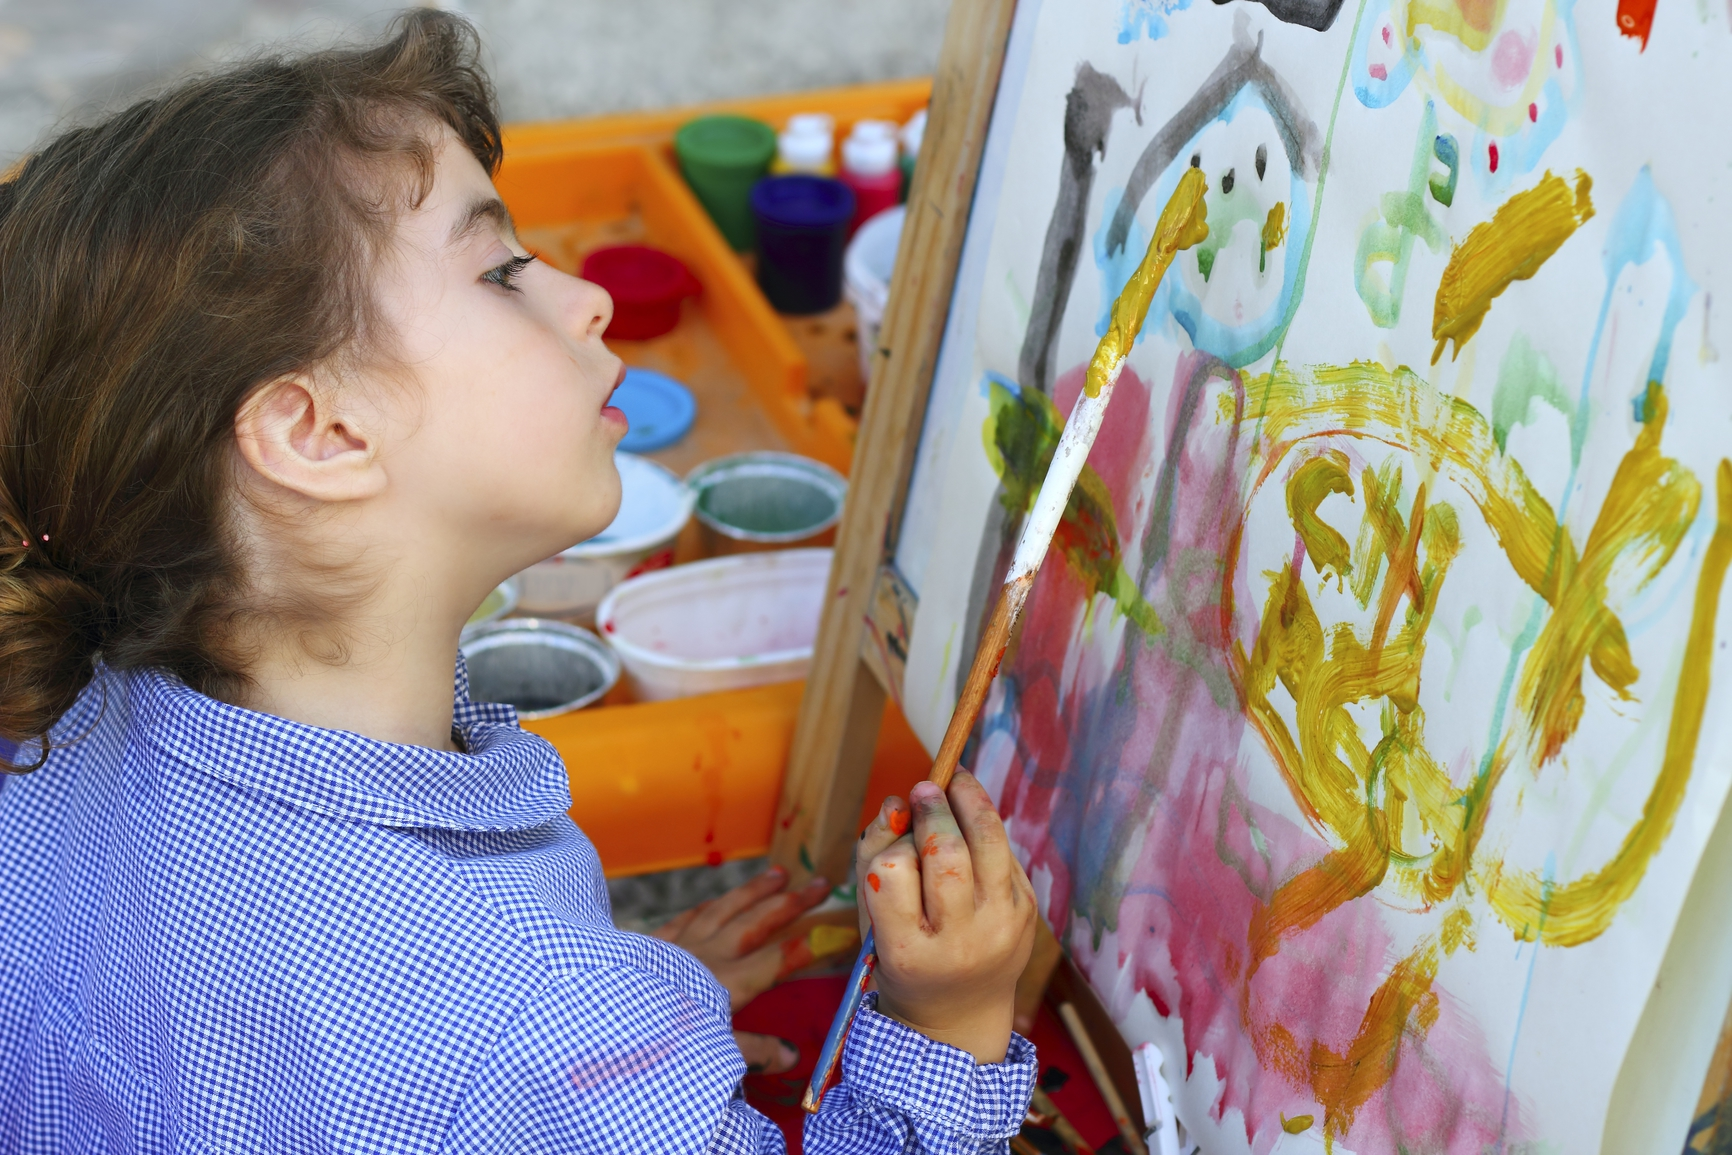 Painting for kids: Make it exciting and educational